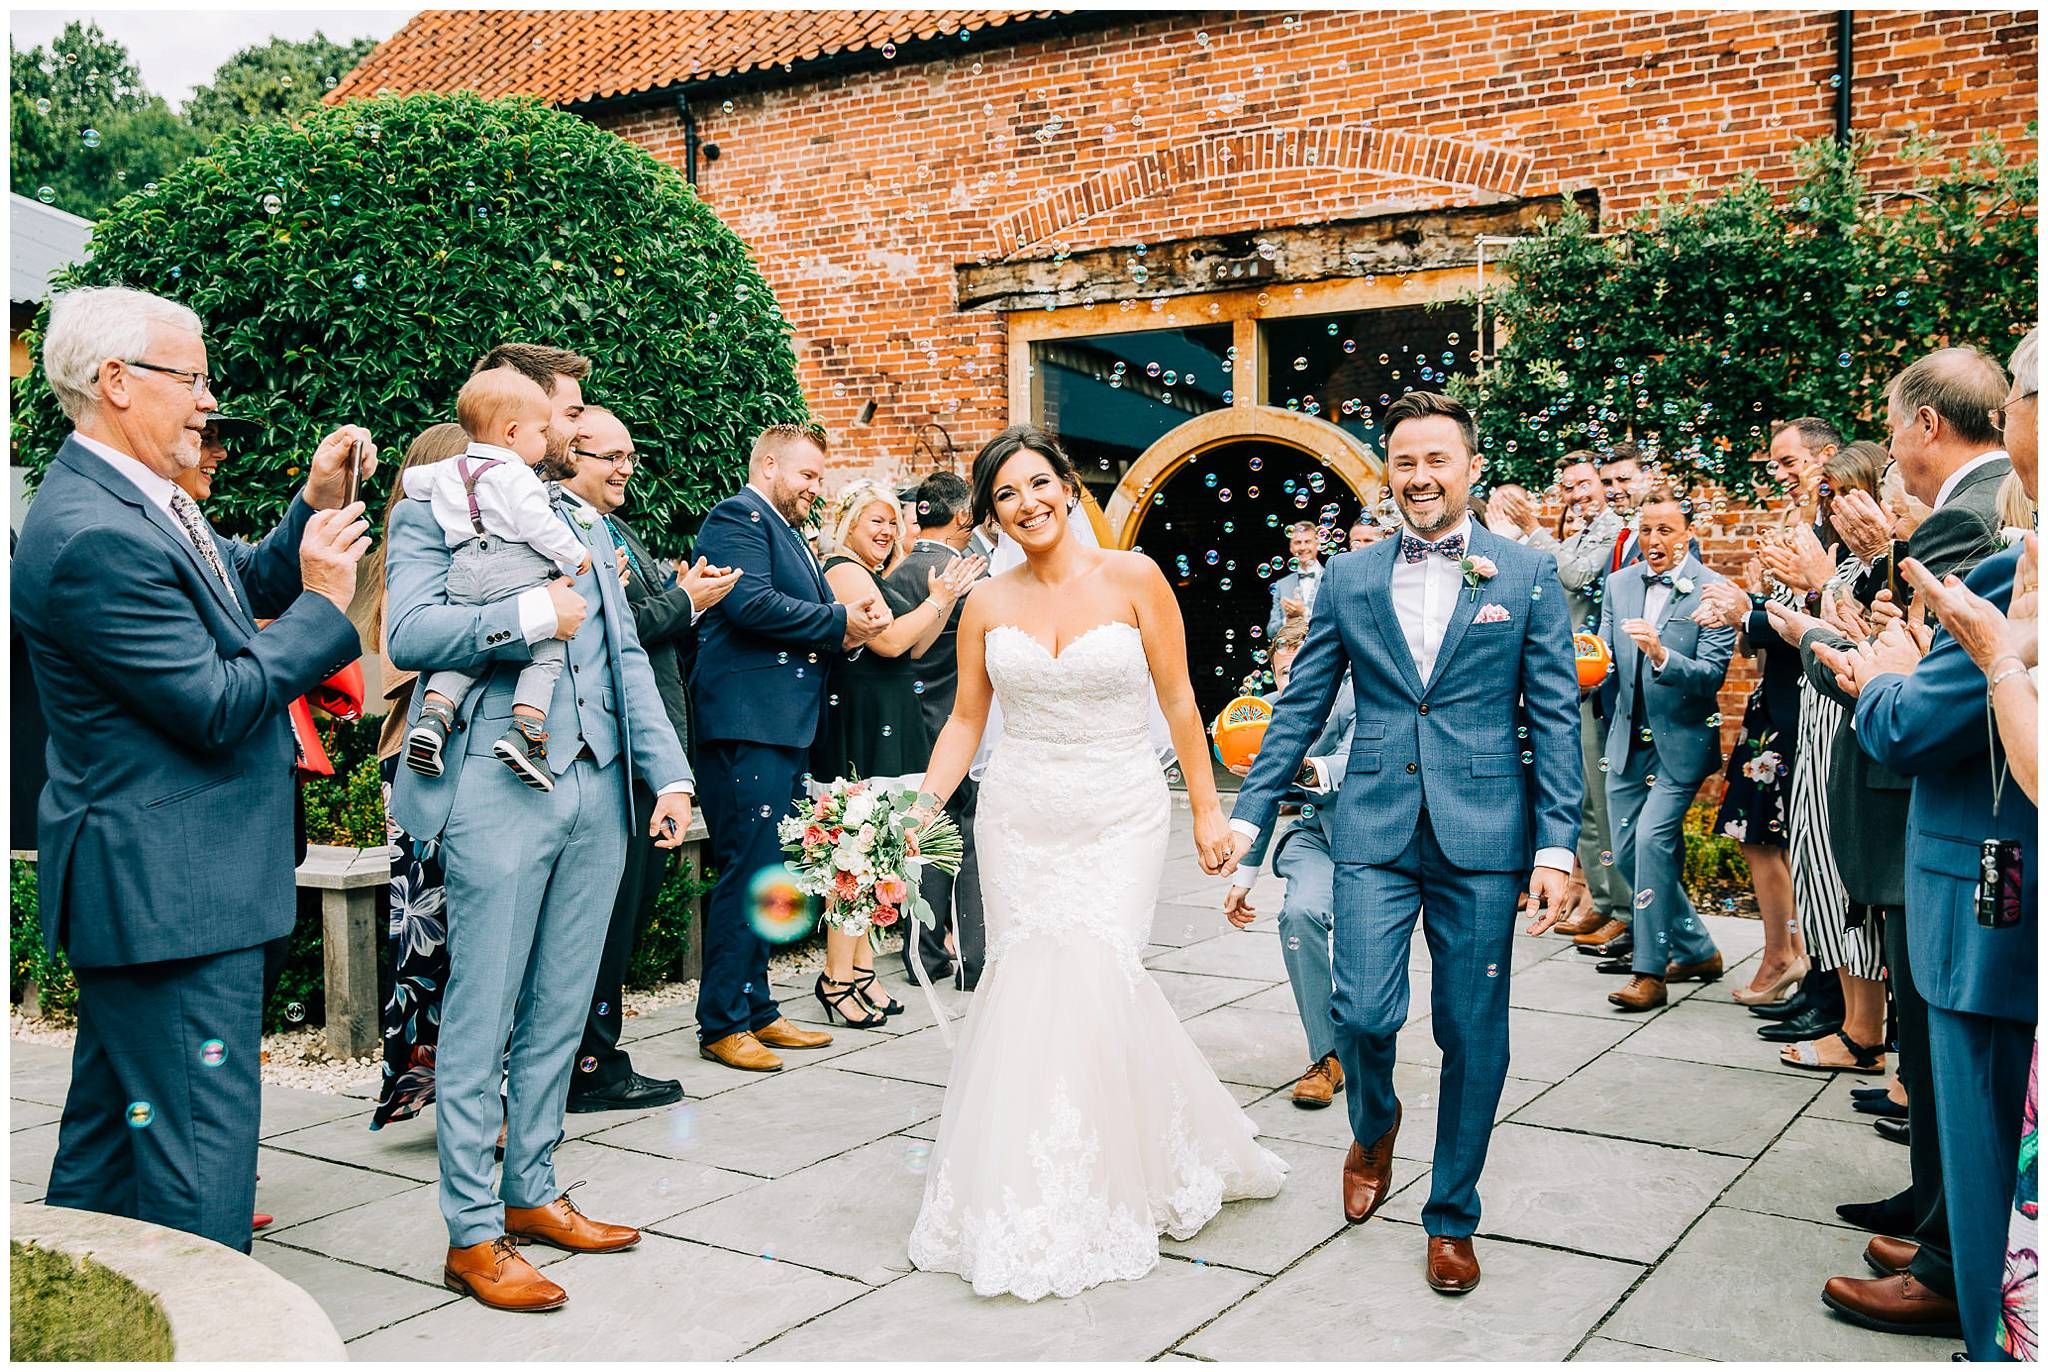 Chic Summer Wedding at Hazel Gap Barn - Nottinghamshire Photographer30.jpg